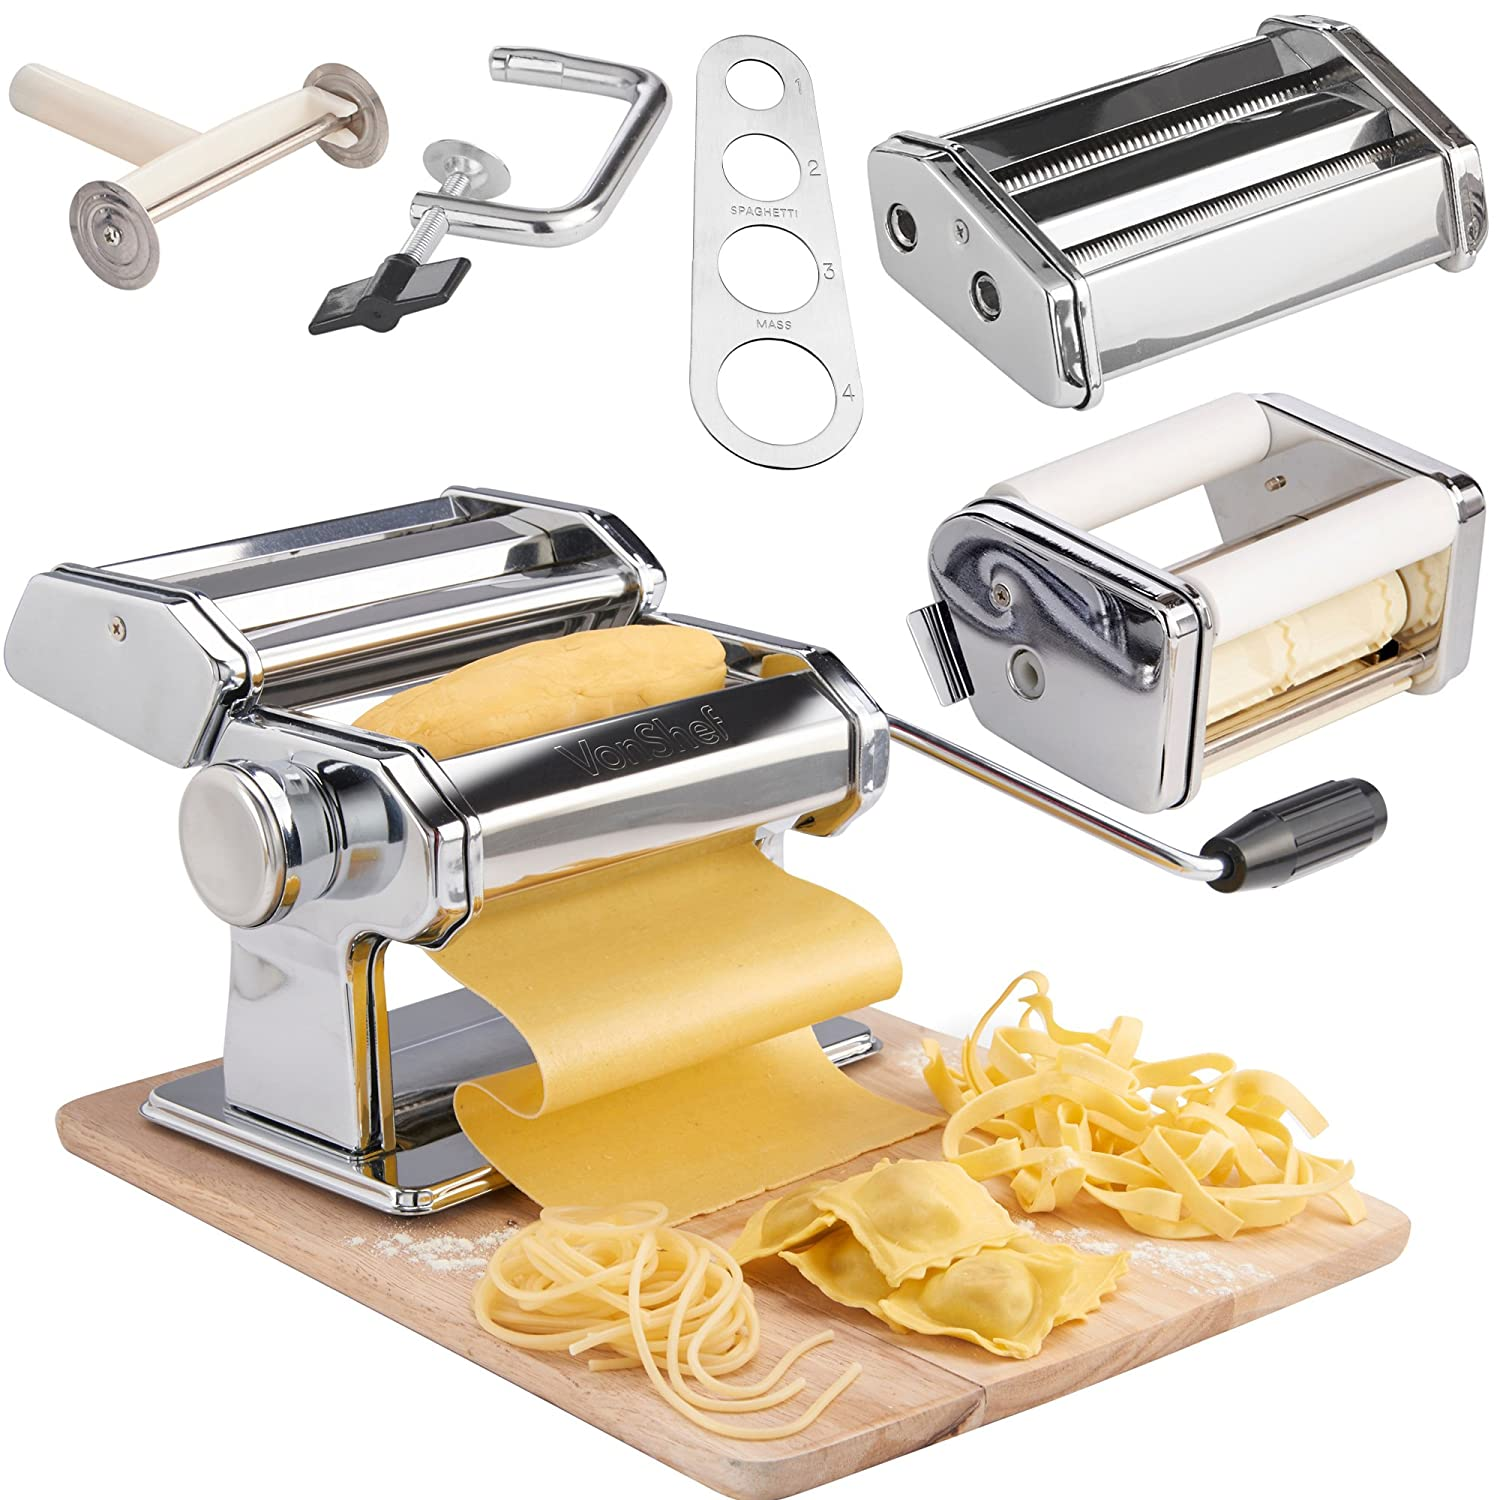 Image result for Pasta Maker